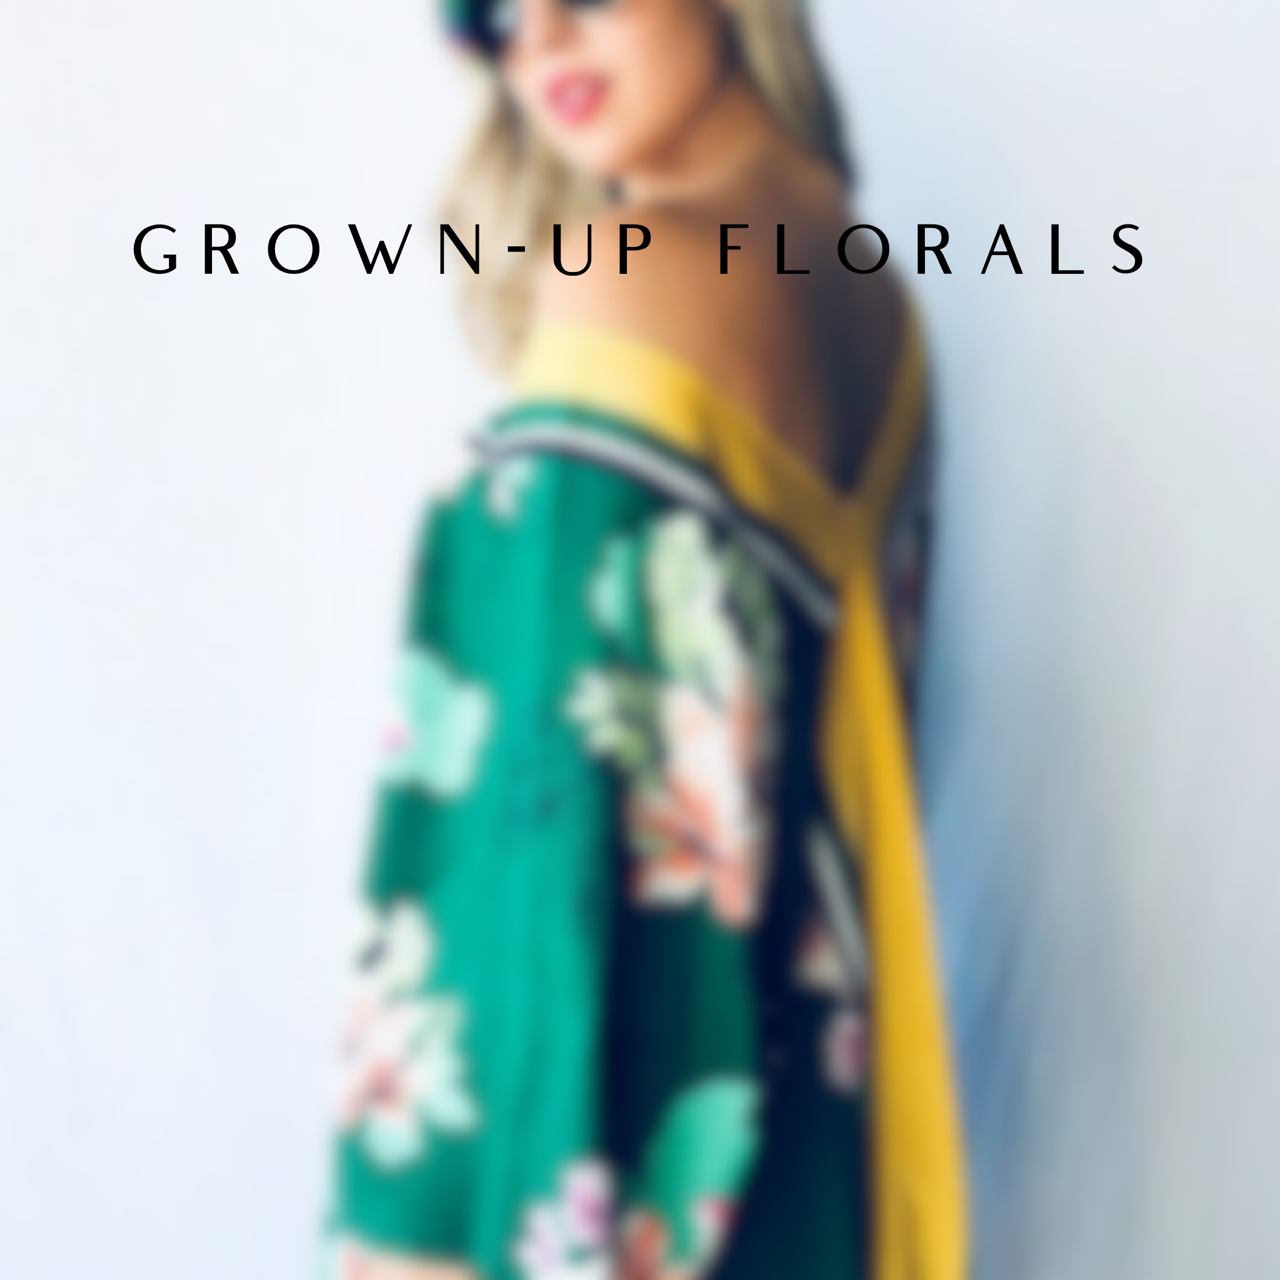 GROWN-UP FLORALS